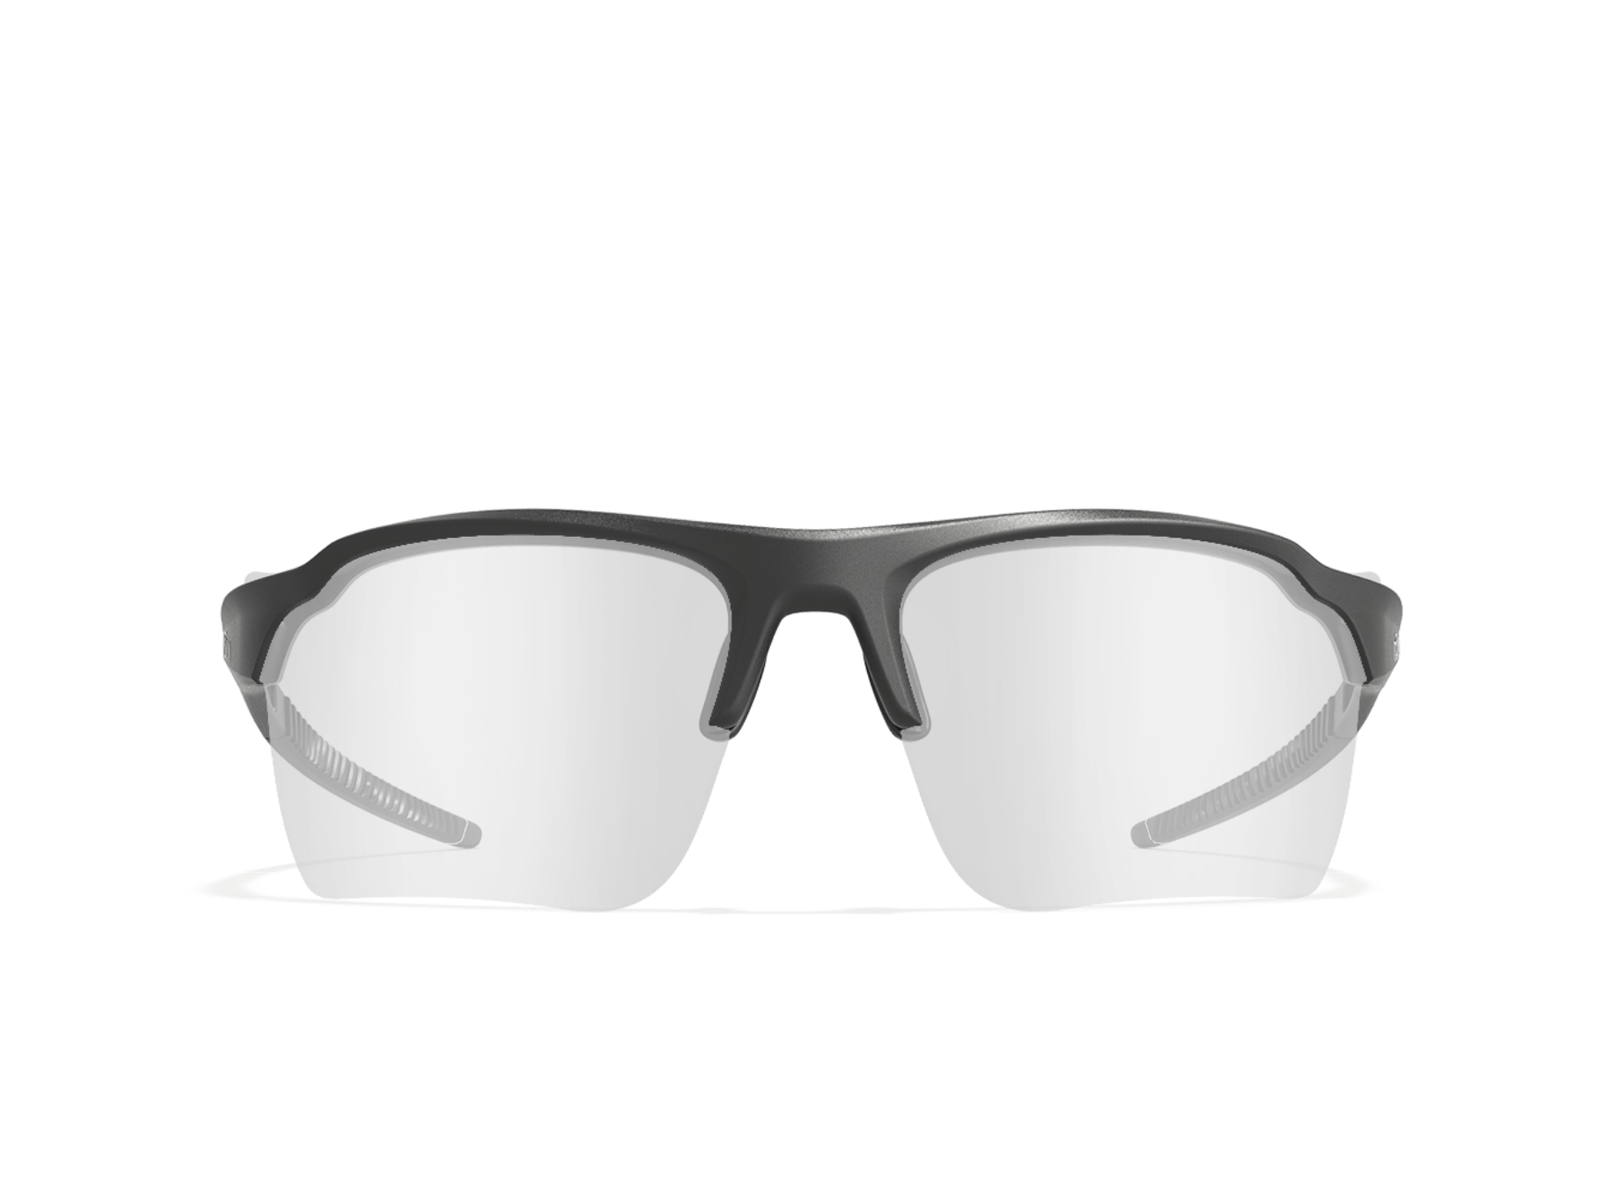 Tl-1x Twin Lens Safety Glasses